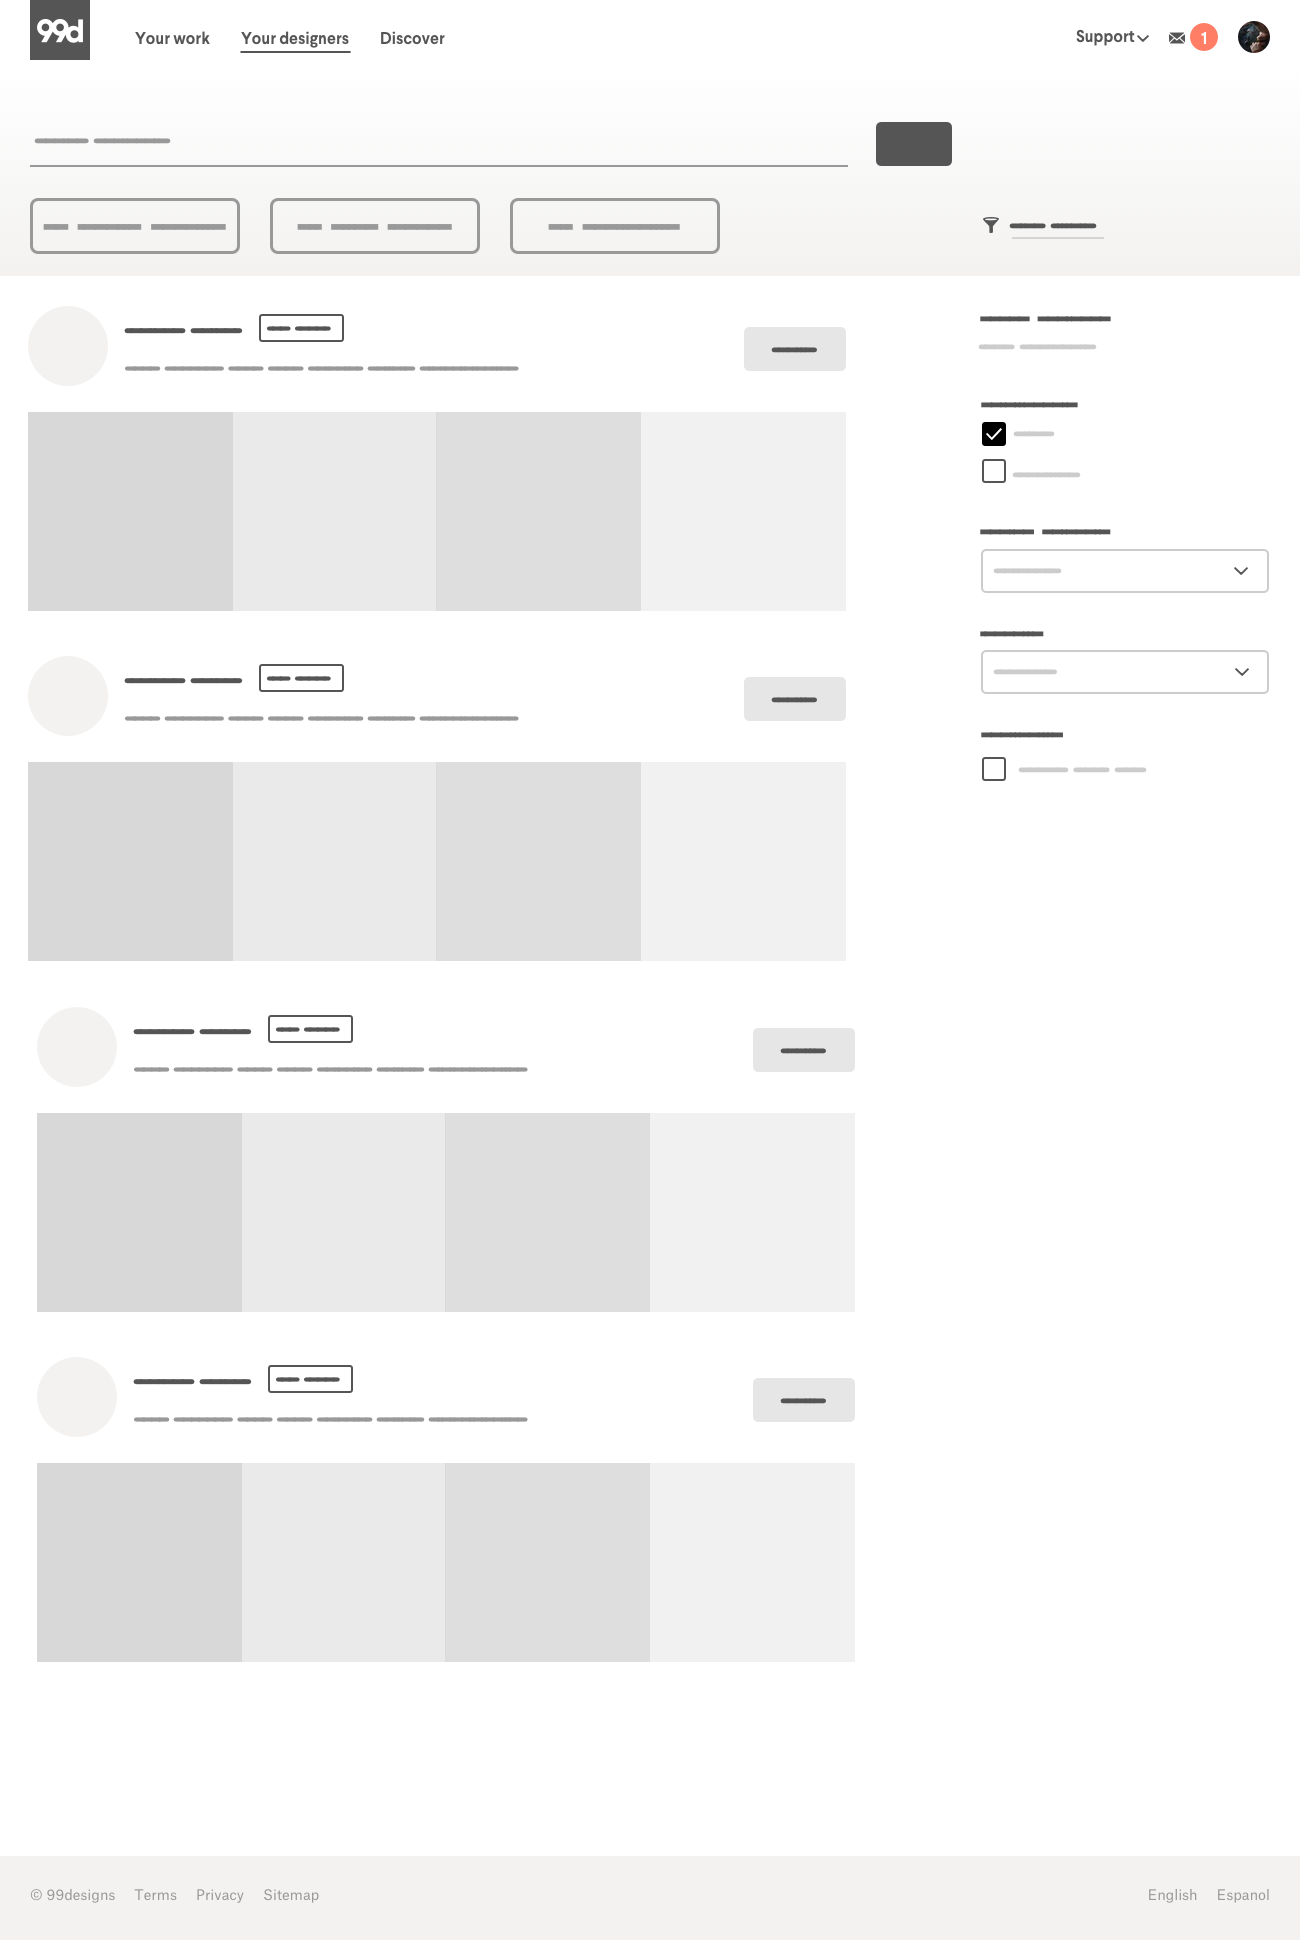 99designs wireframe